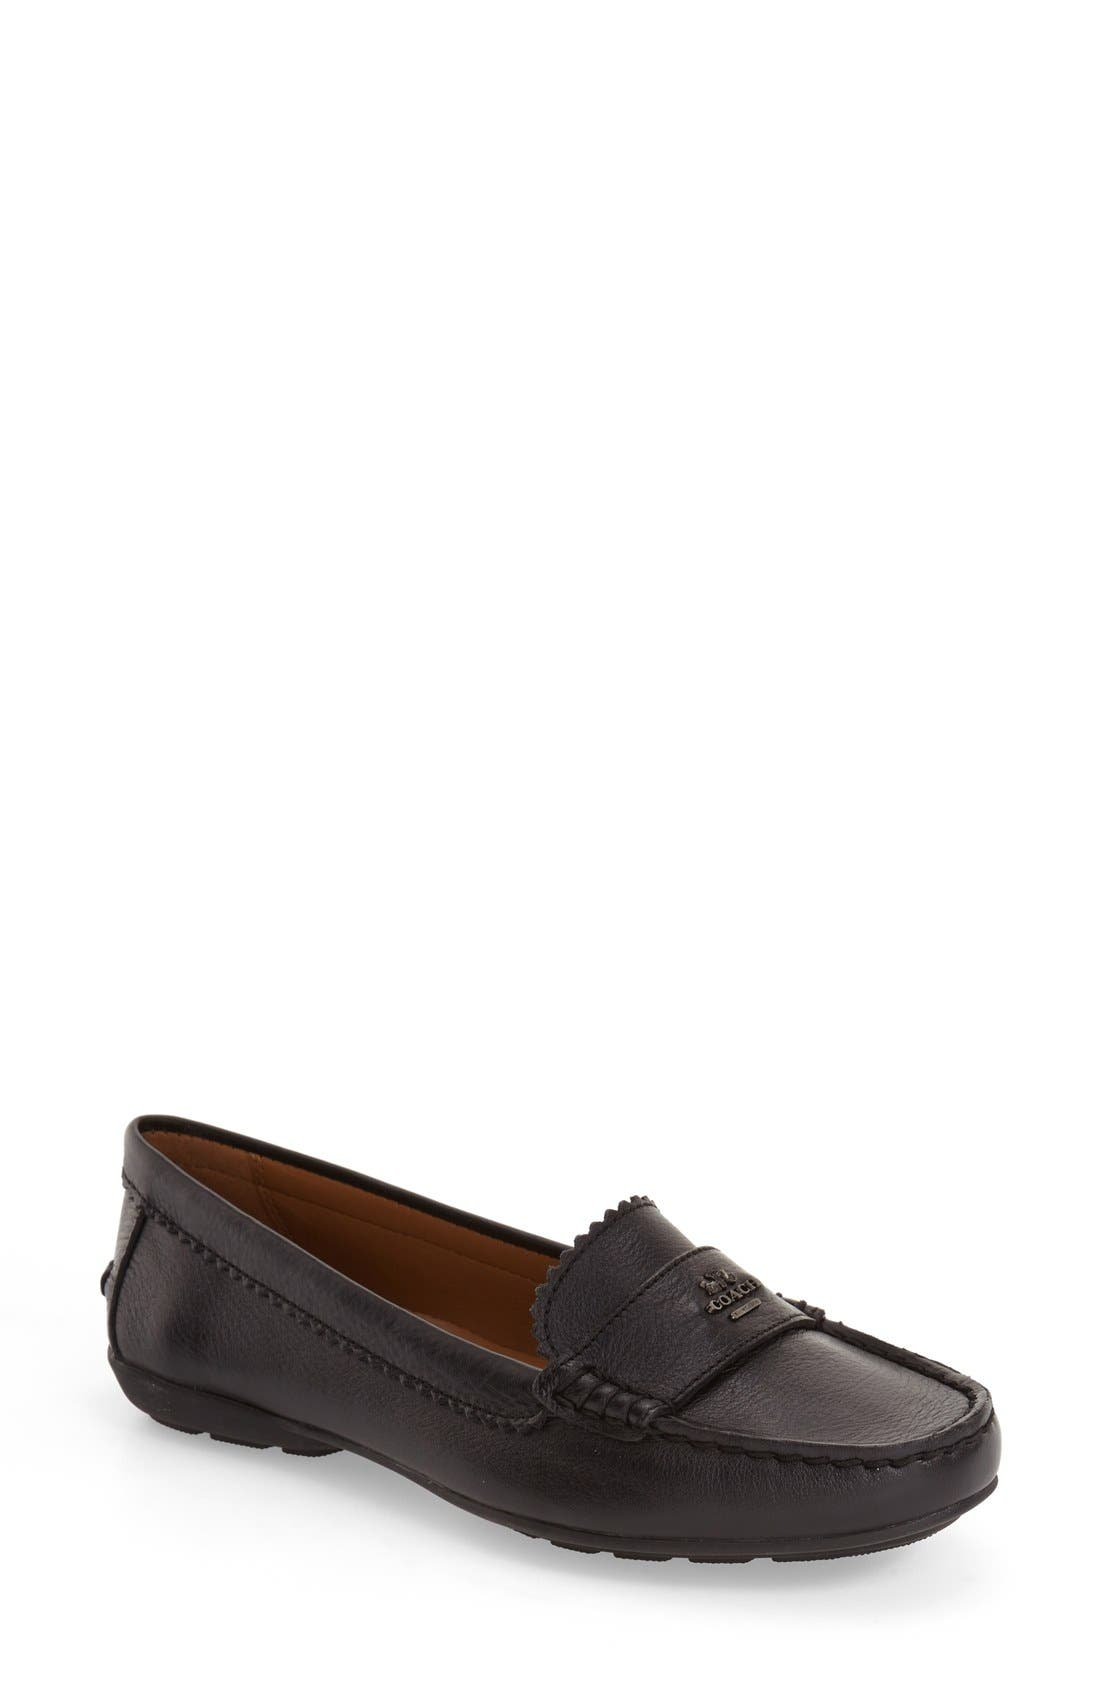 COACH 'Odette' Moccasin Loafer (Women)